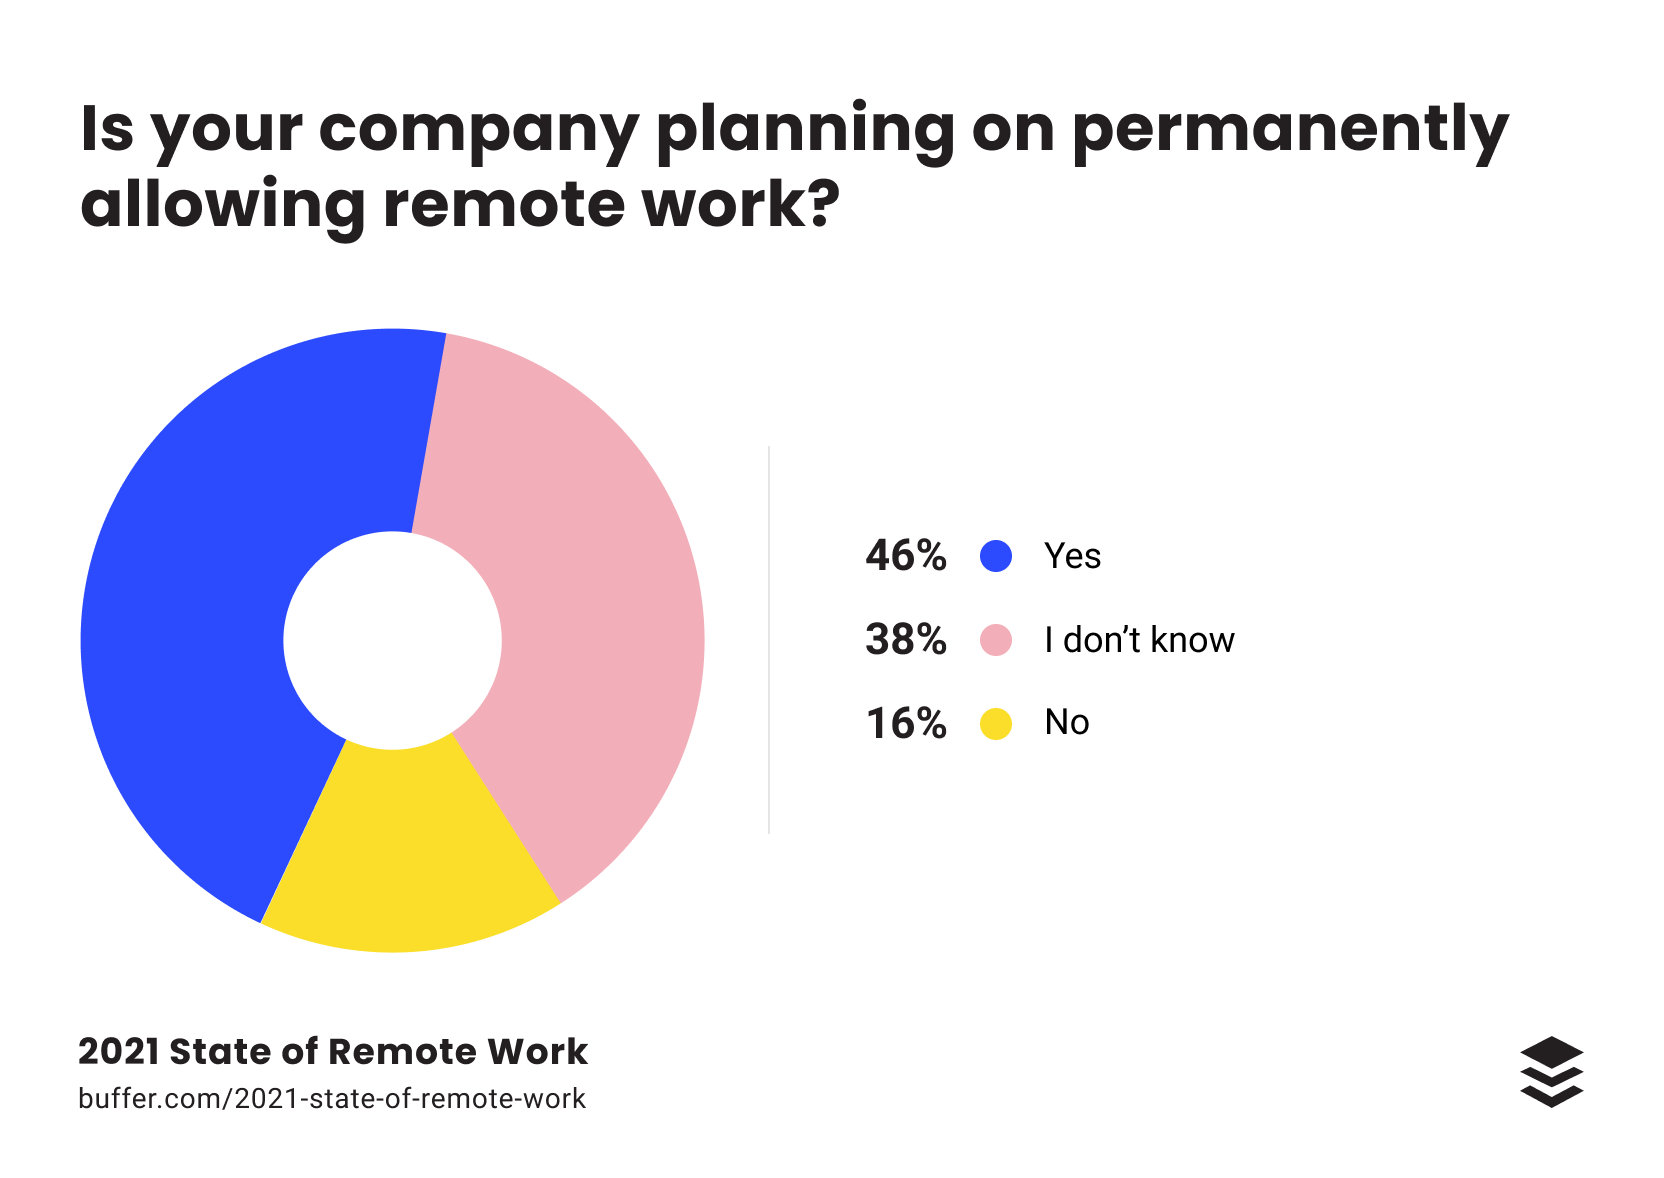 The remote work statistics for 2021 show an overwhelmingly positive attitude toward it.